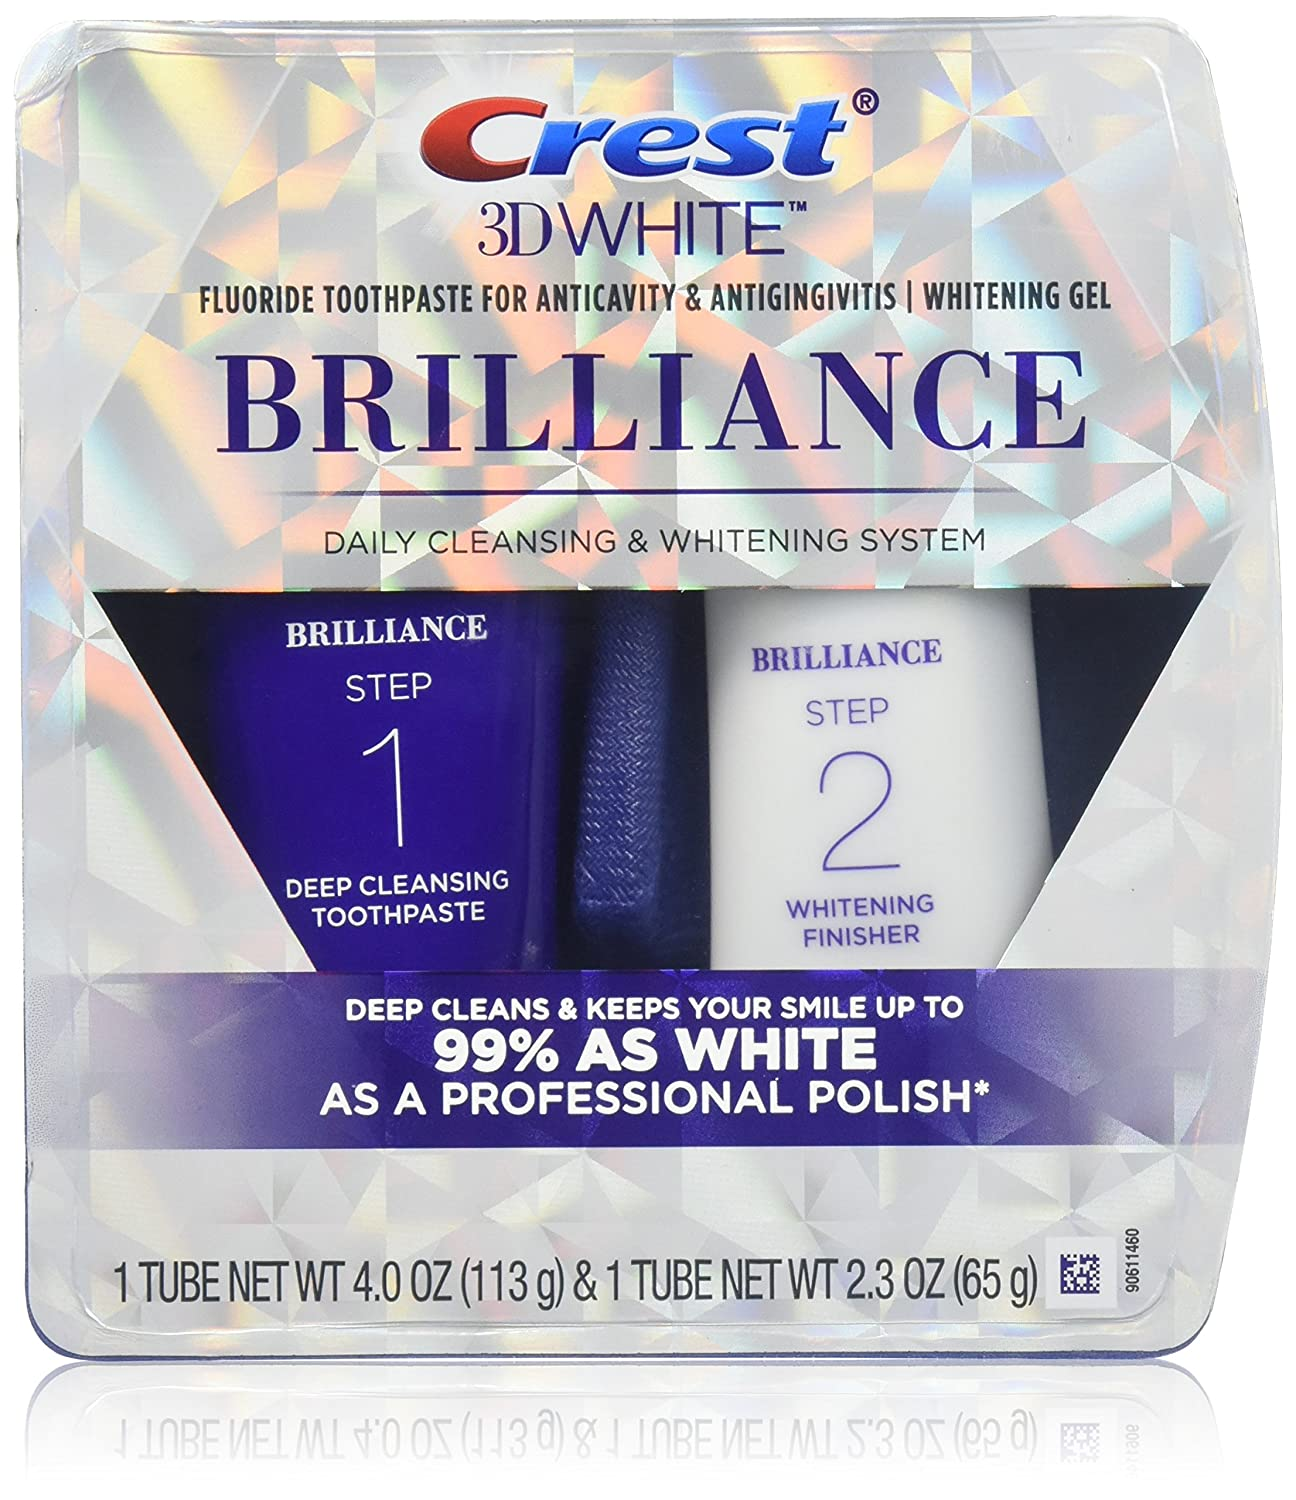 Crest Brilliance Daily Cleasning Toothpaste And Whitening Gel System - 4 Oz